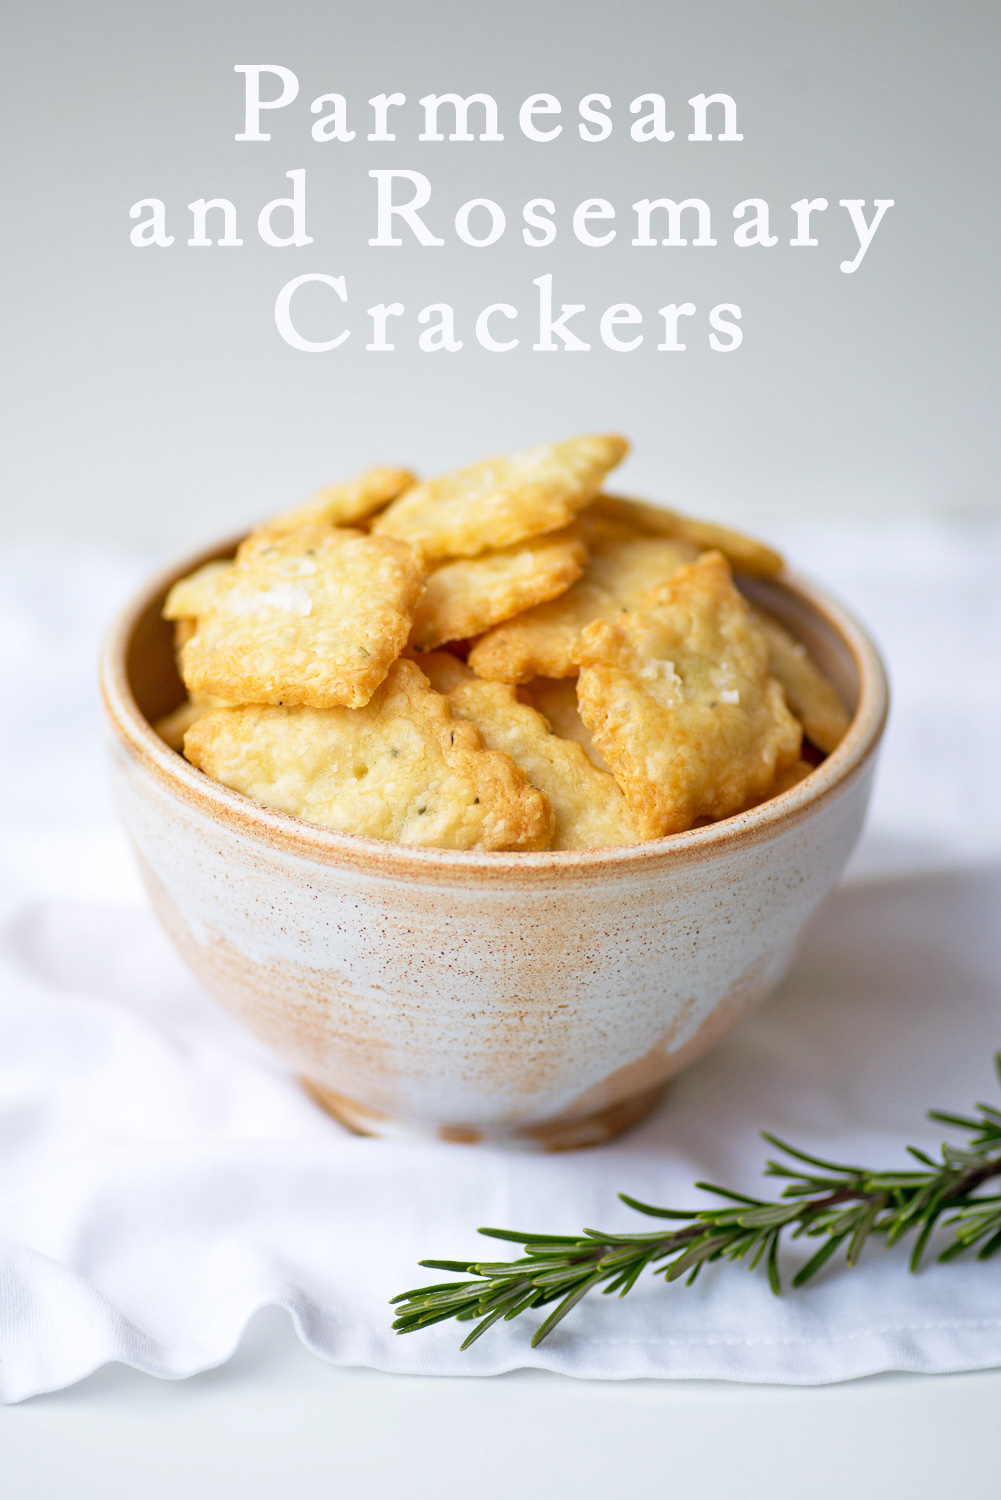 Parmesan-Rosemary-Crackers-TOP